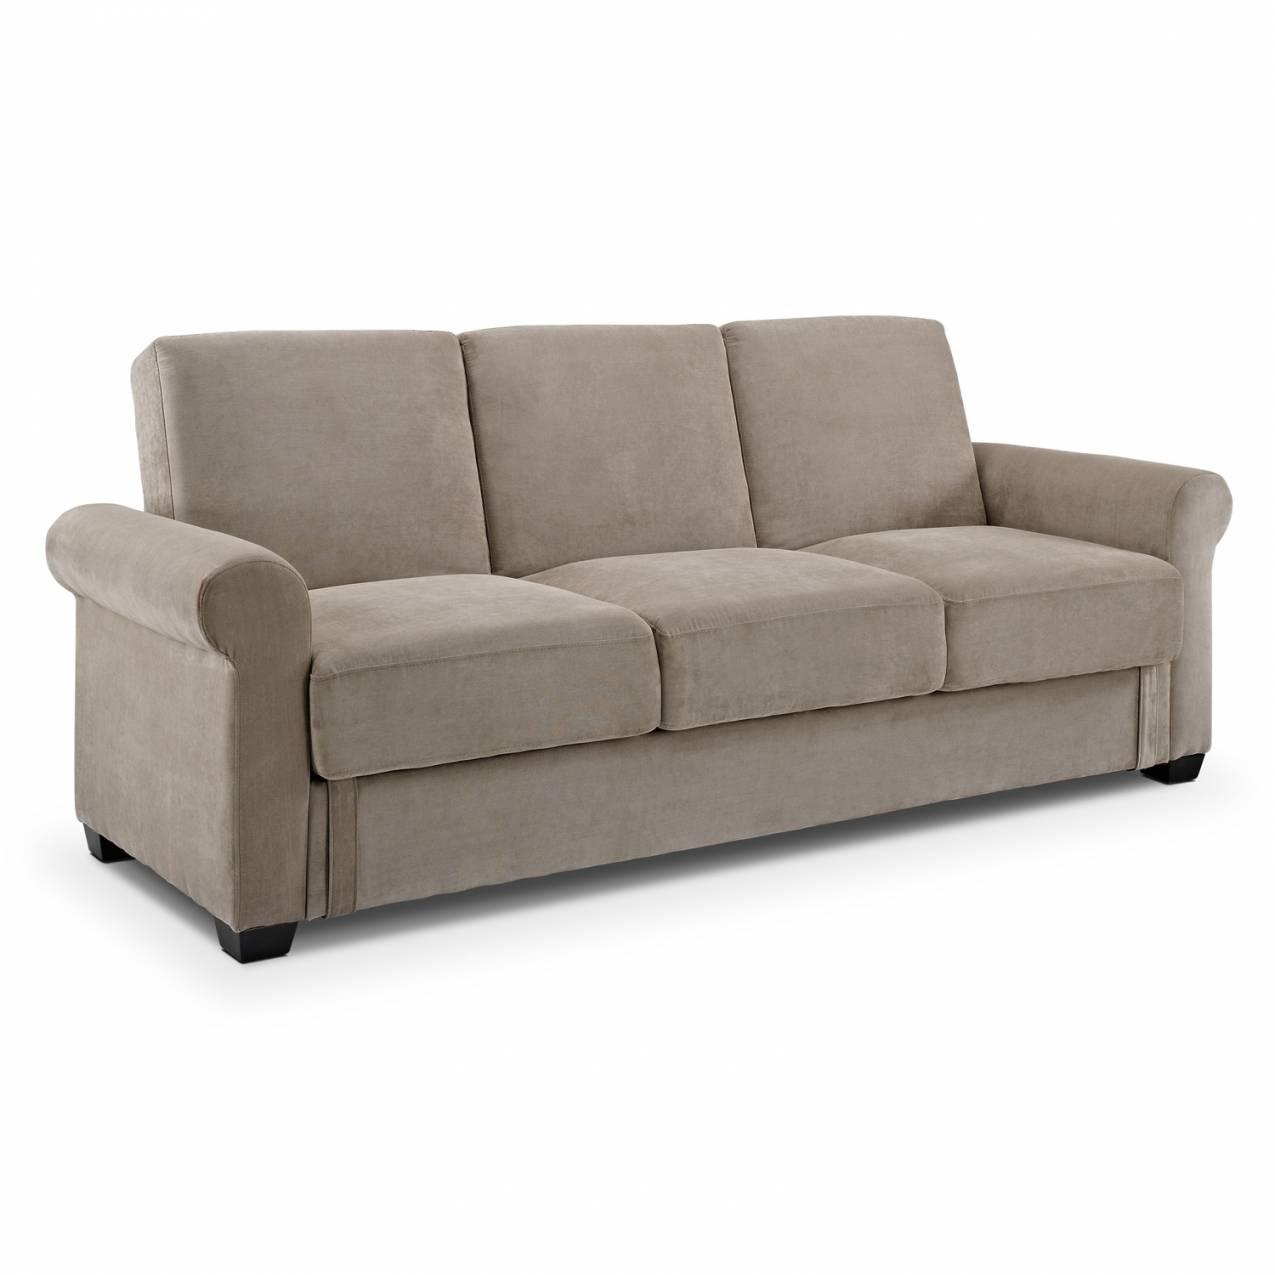 Furniture: Cheap Leather Couches | Sears Couch | Loveseats Under $300 for Sears Sofa (Image 5 of 25)